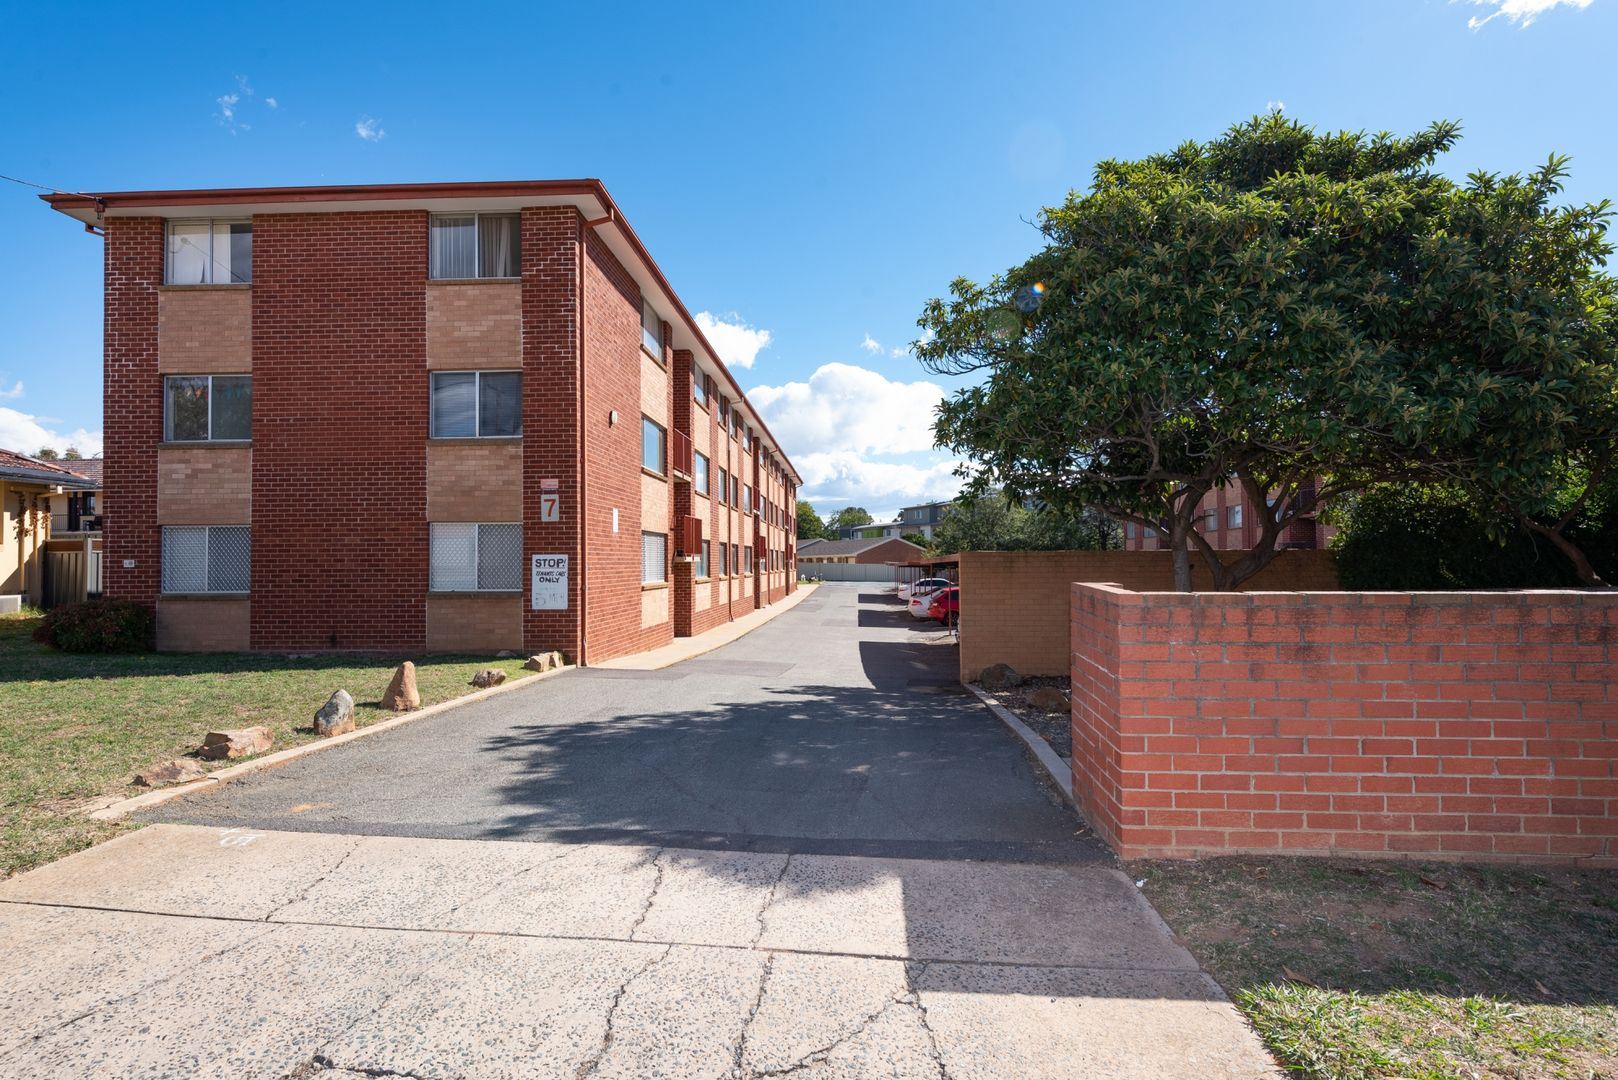 14/7 Young Street, Queanbeyan NSW 2620, Image 0